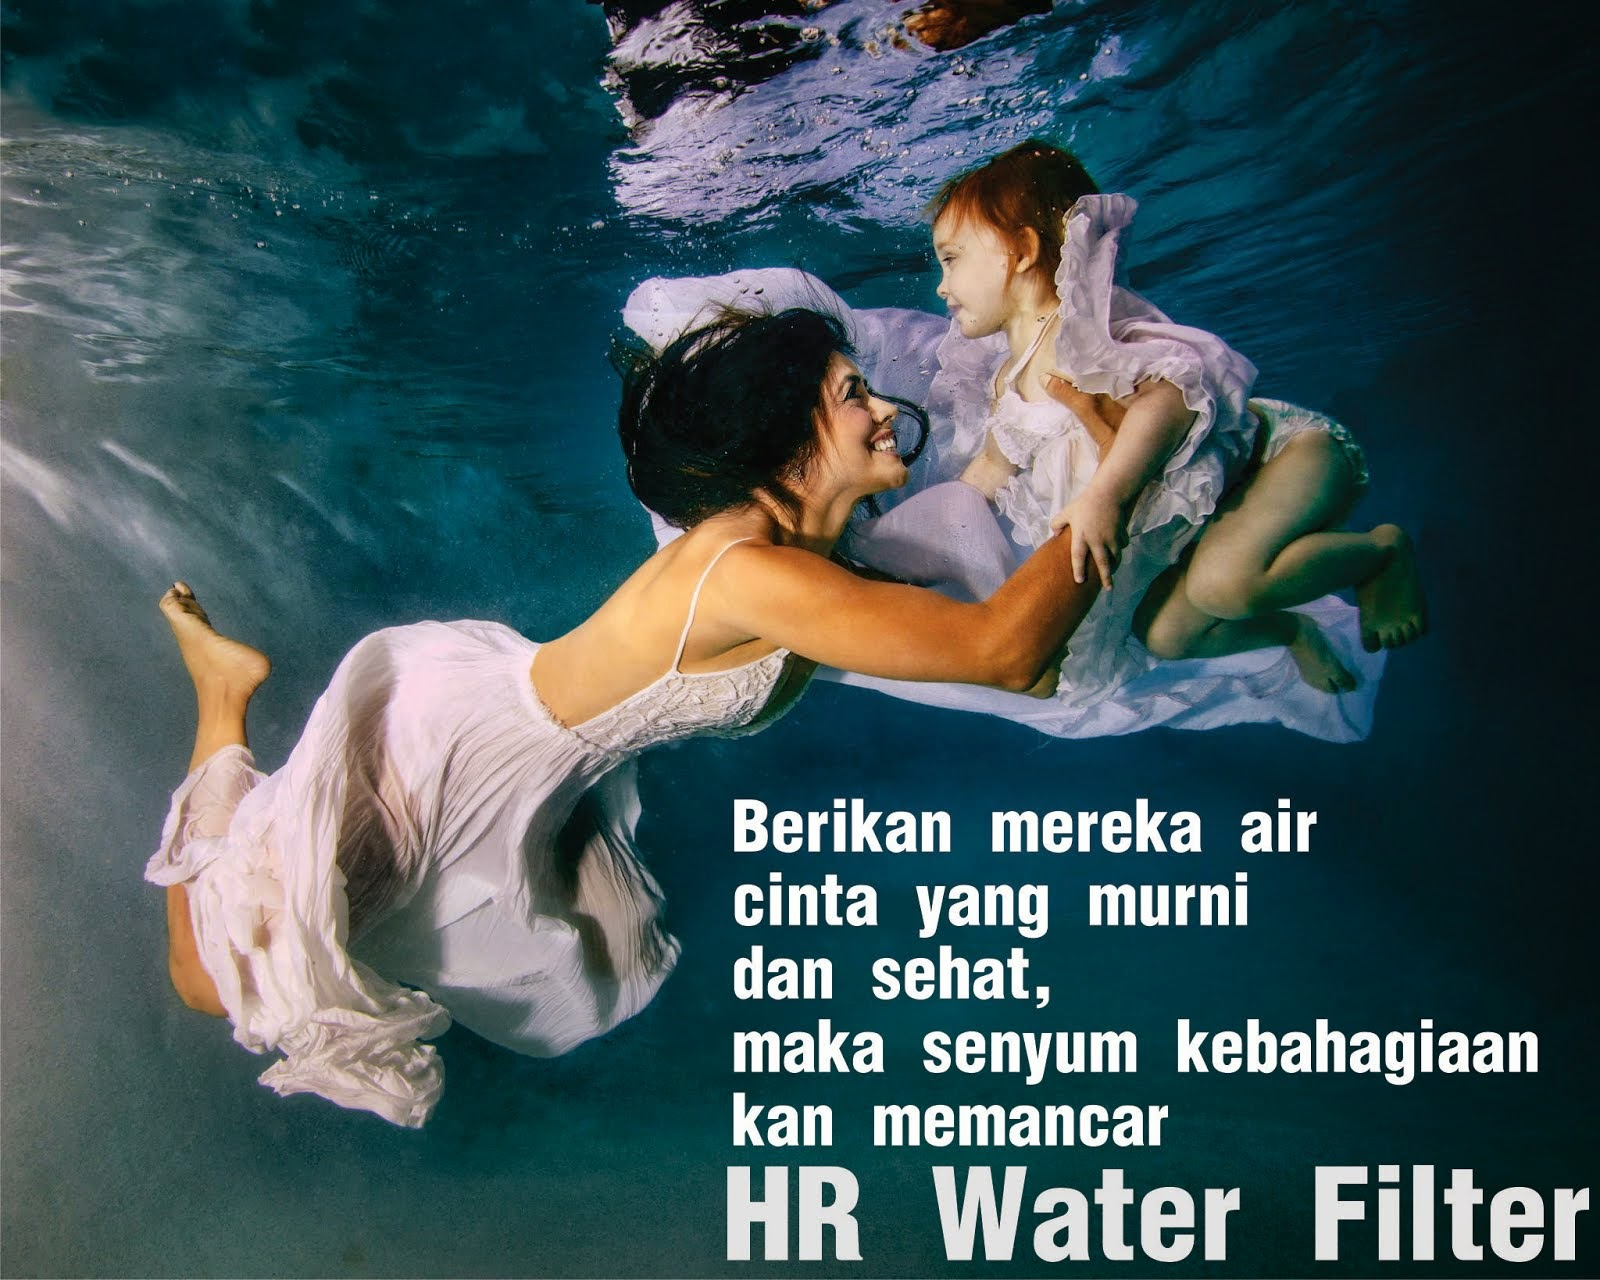 Buruan Beli HR Water Filter